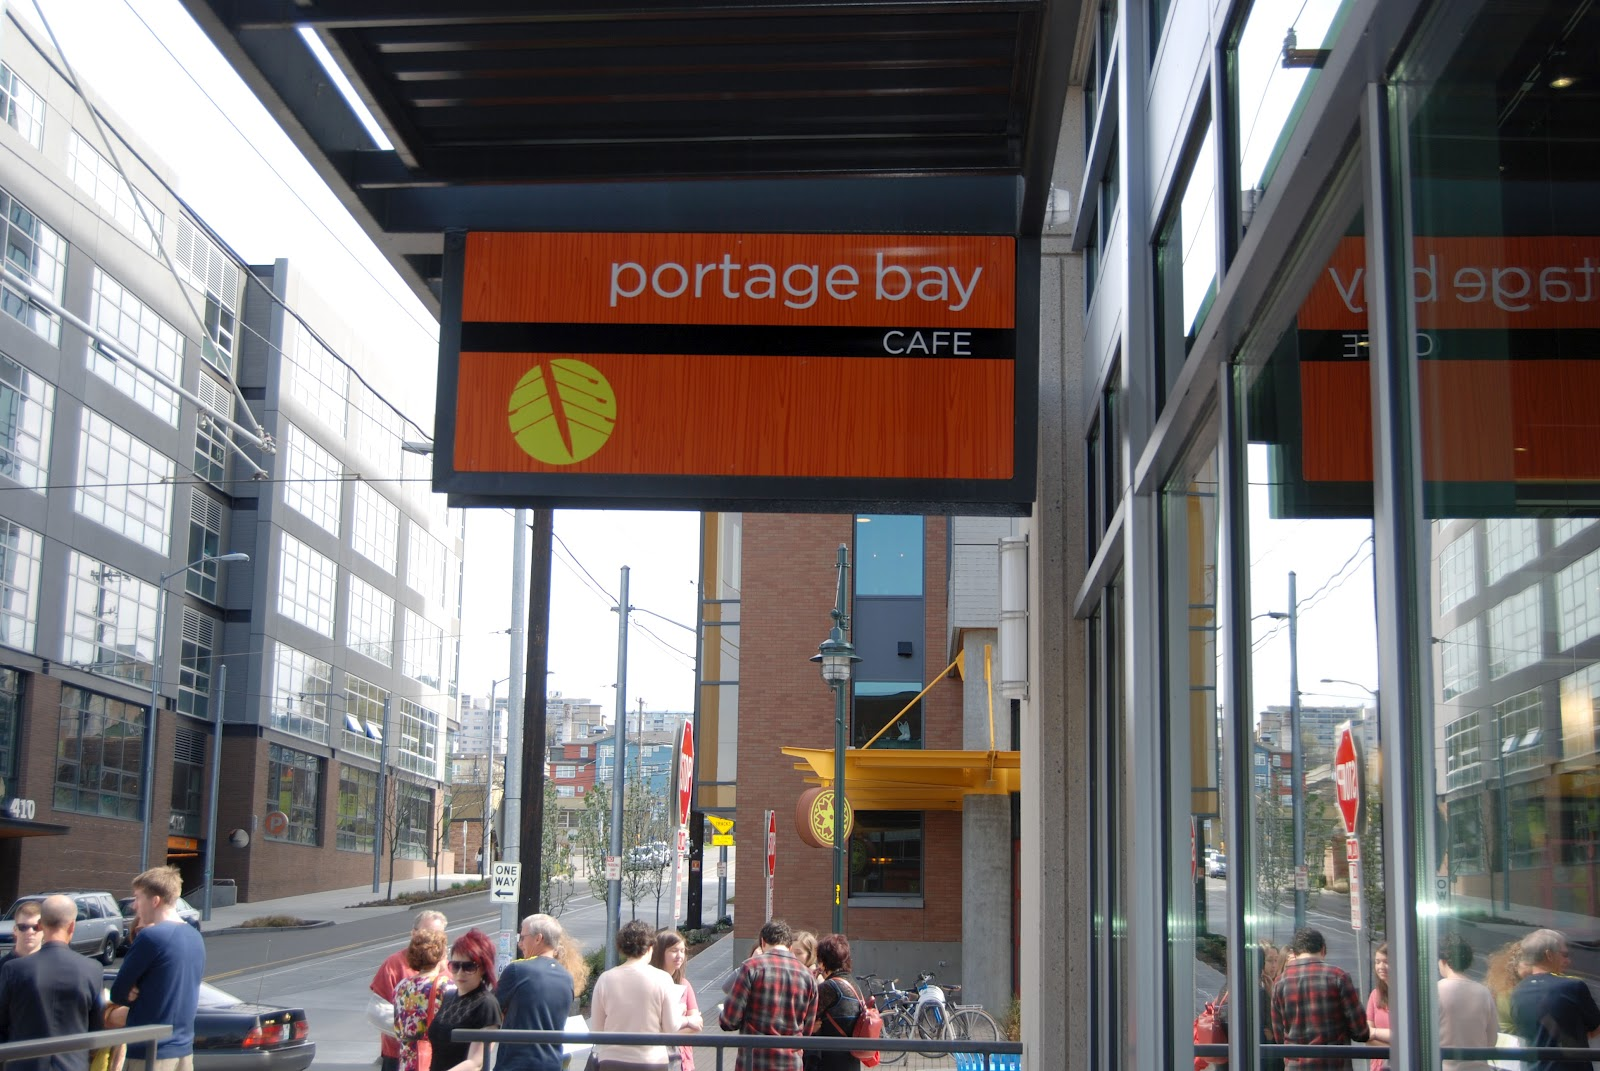 easter brunch at portage bay cafe